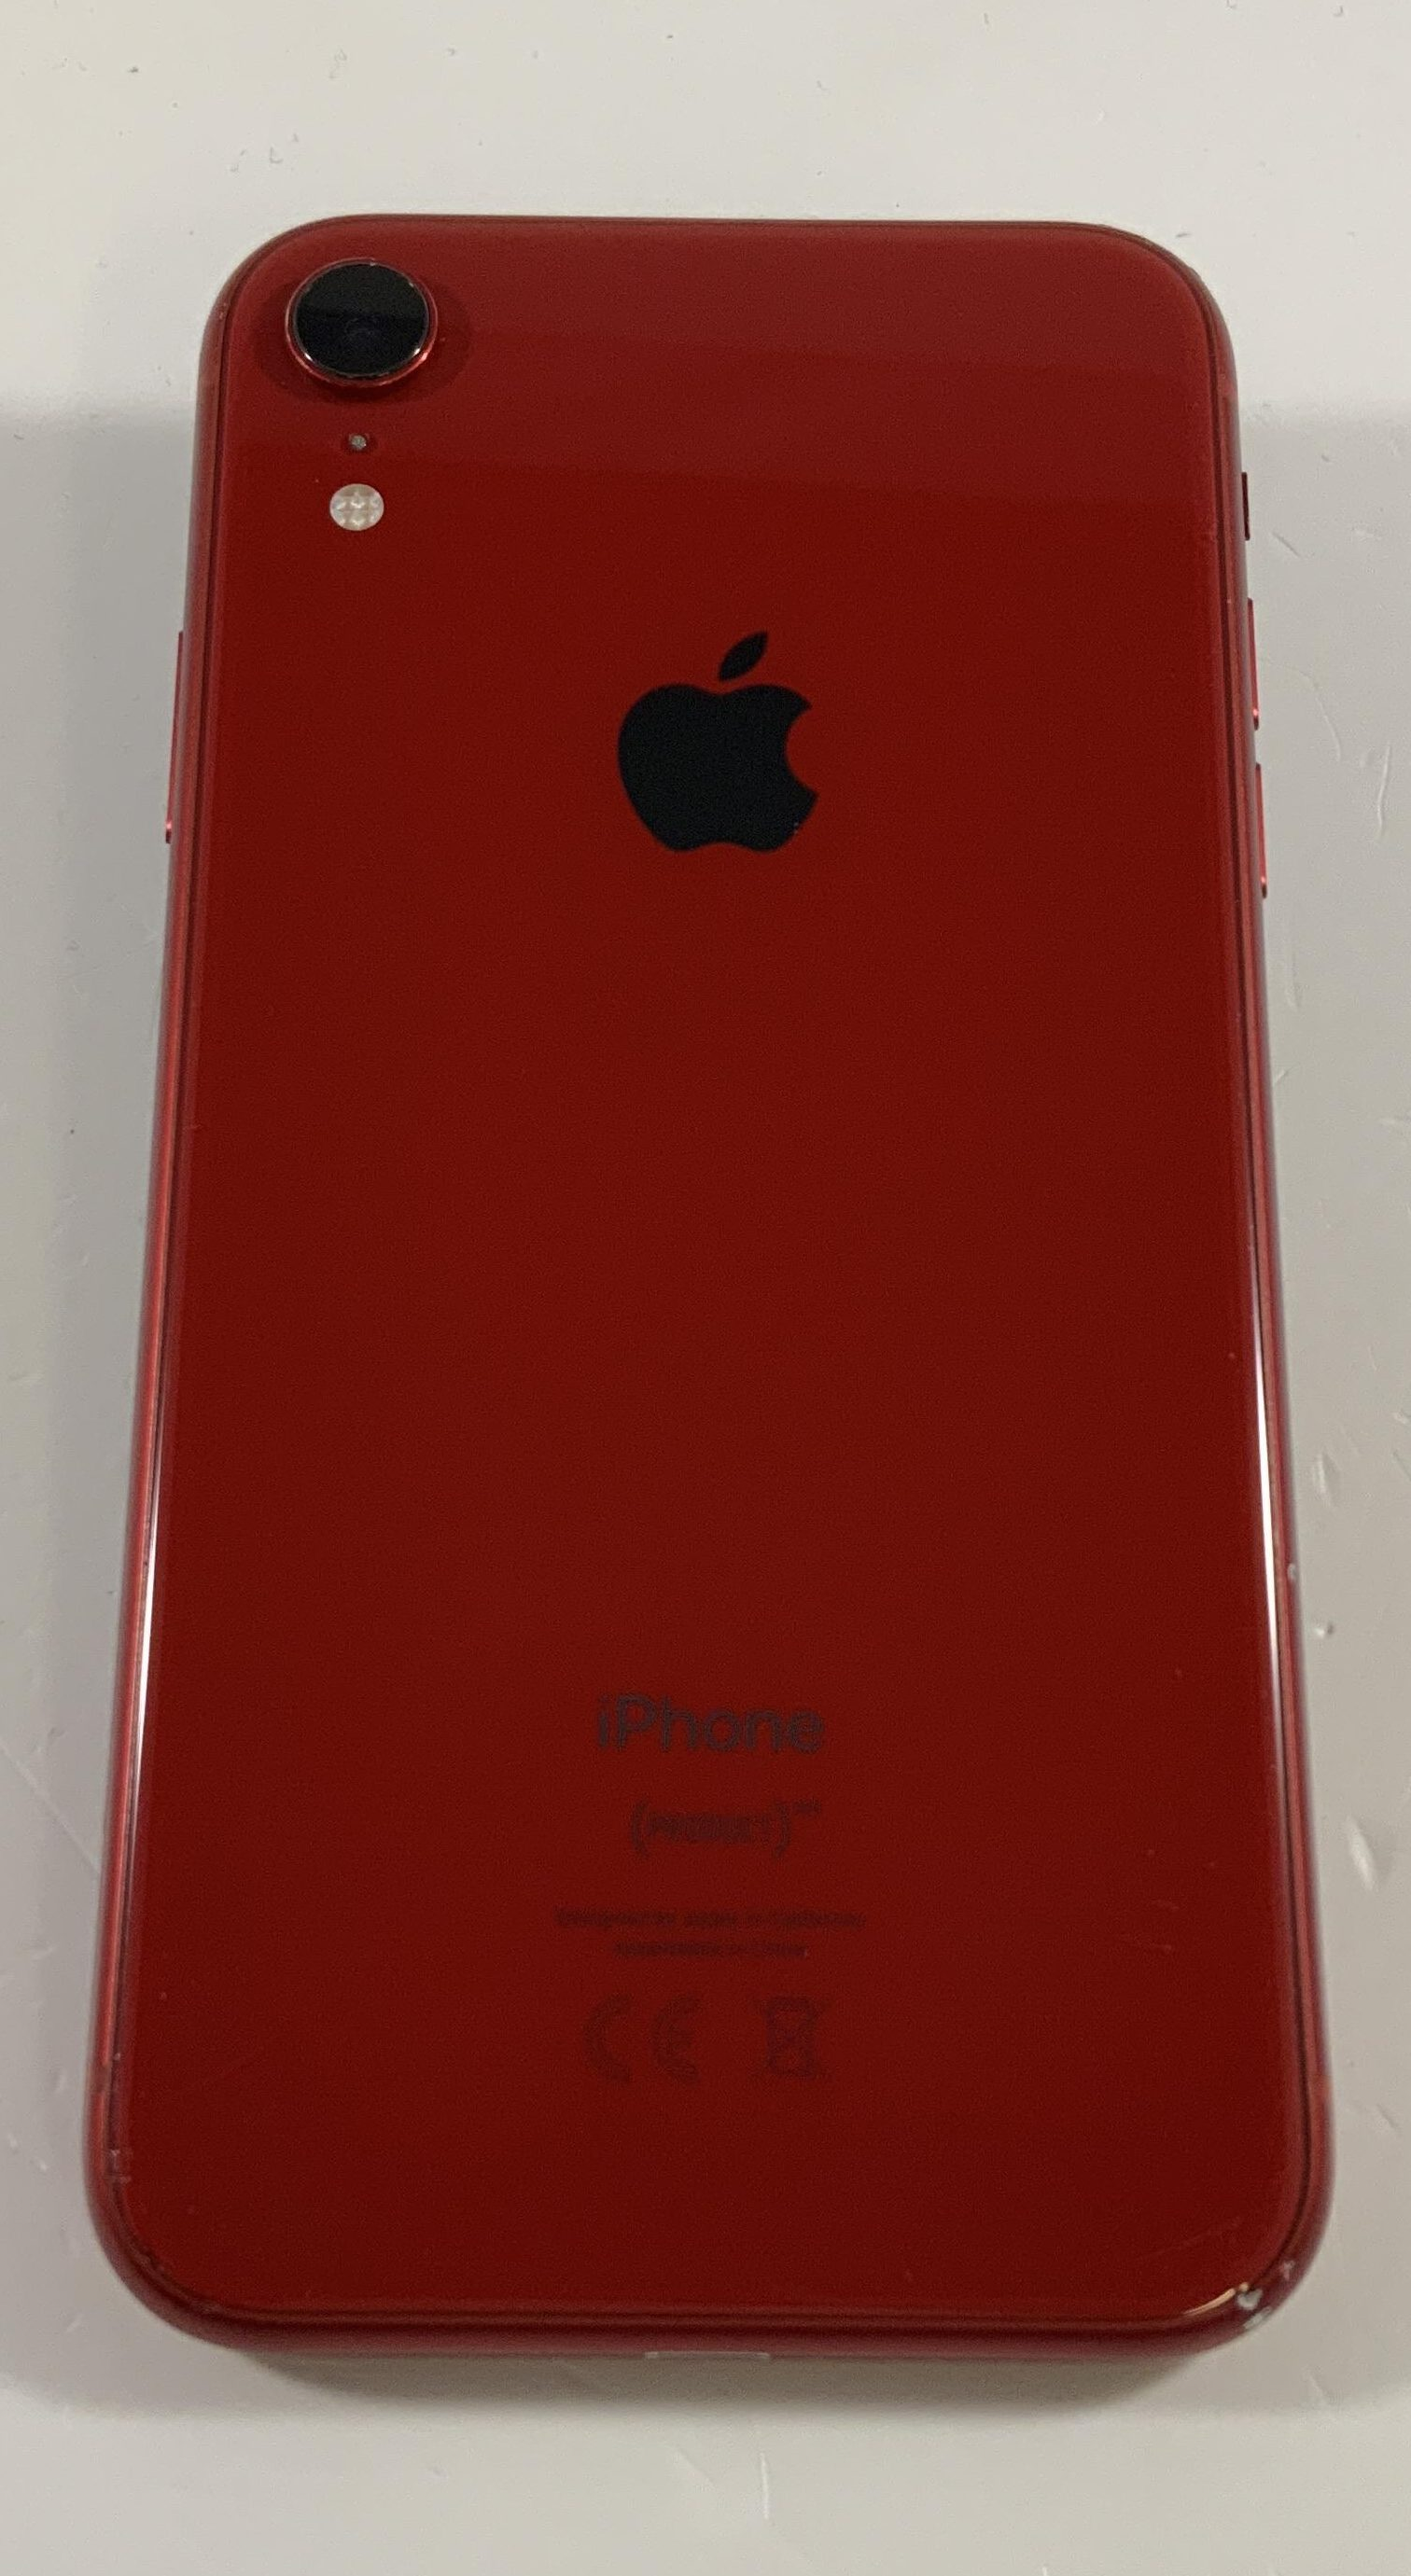 iPhone XR 64GB, 64GB, Red, imagen 2